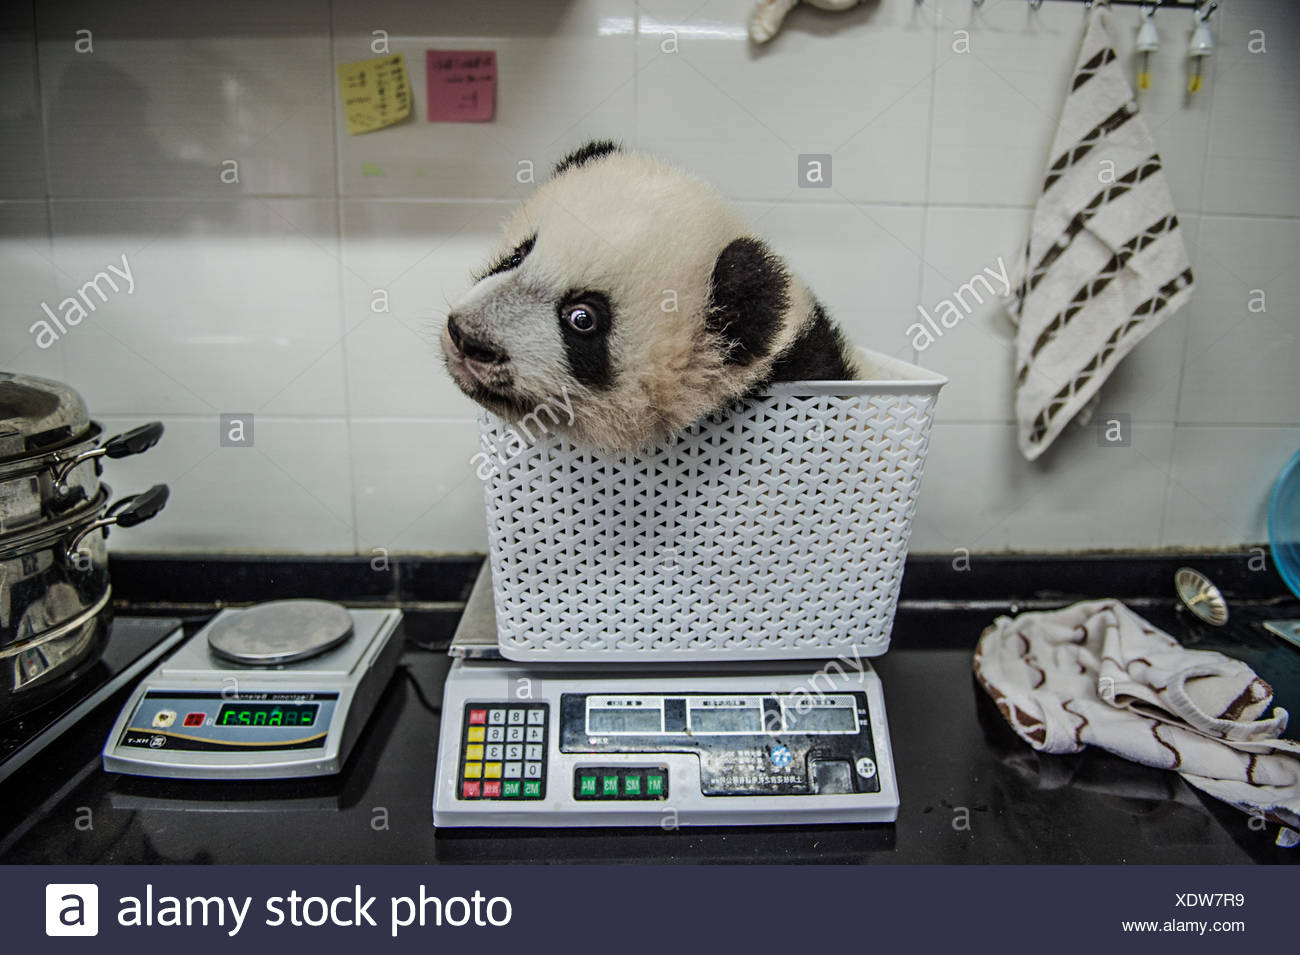 A giant panda cub gets weighed at Bifengxia Giant Panda Breeding and Research Center. Stock Photo